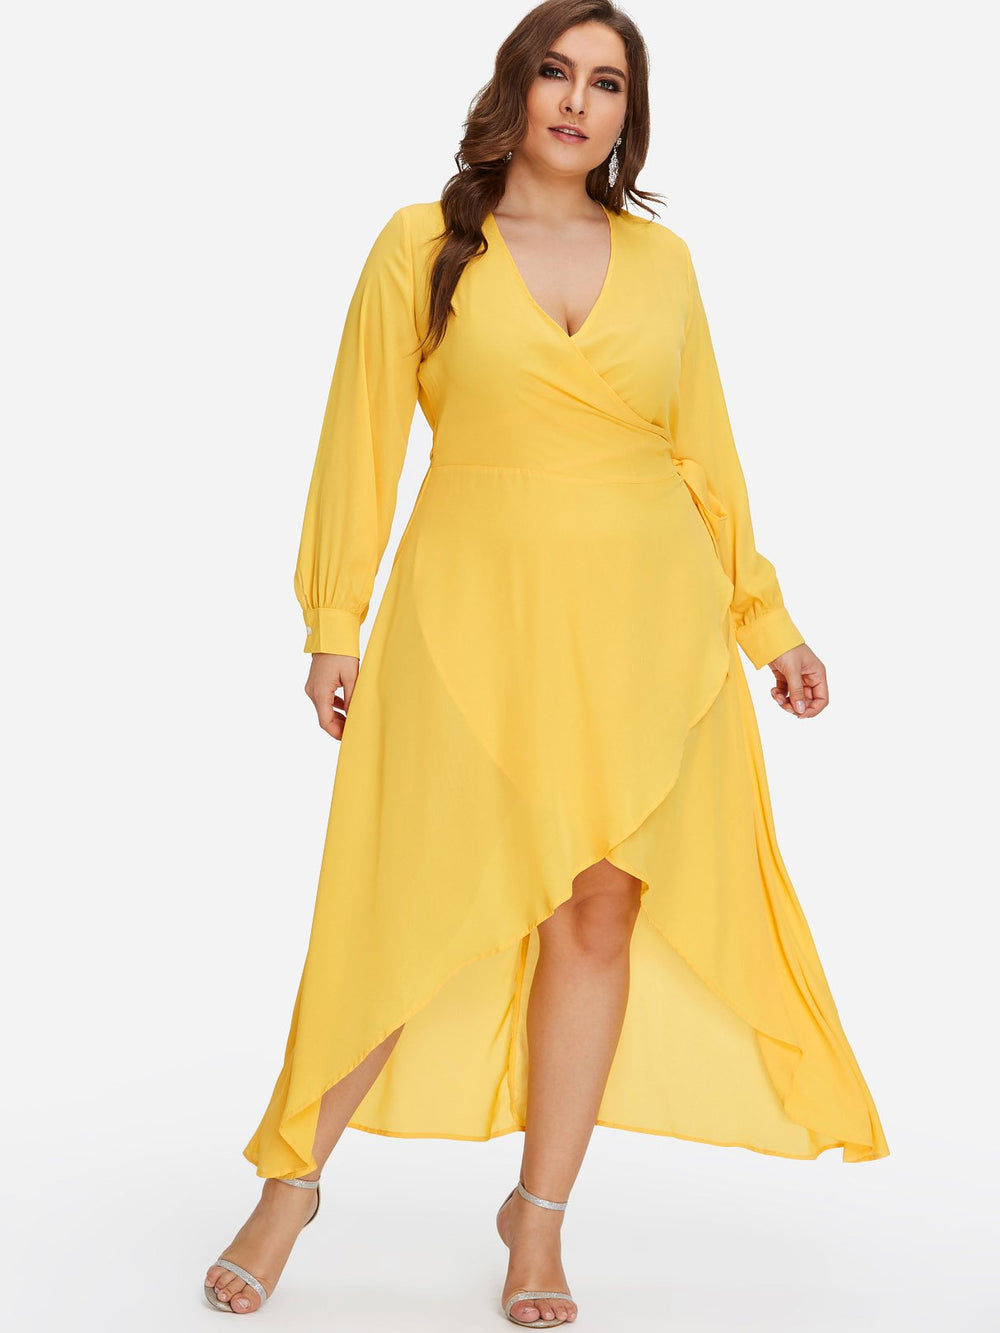 V-Neck Plain Self-Tie Wrap Long Sleeve Yellow Plus Size Dress